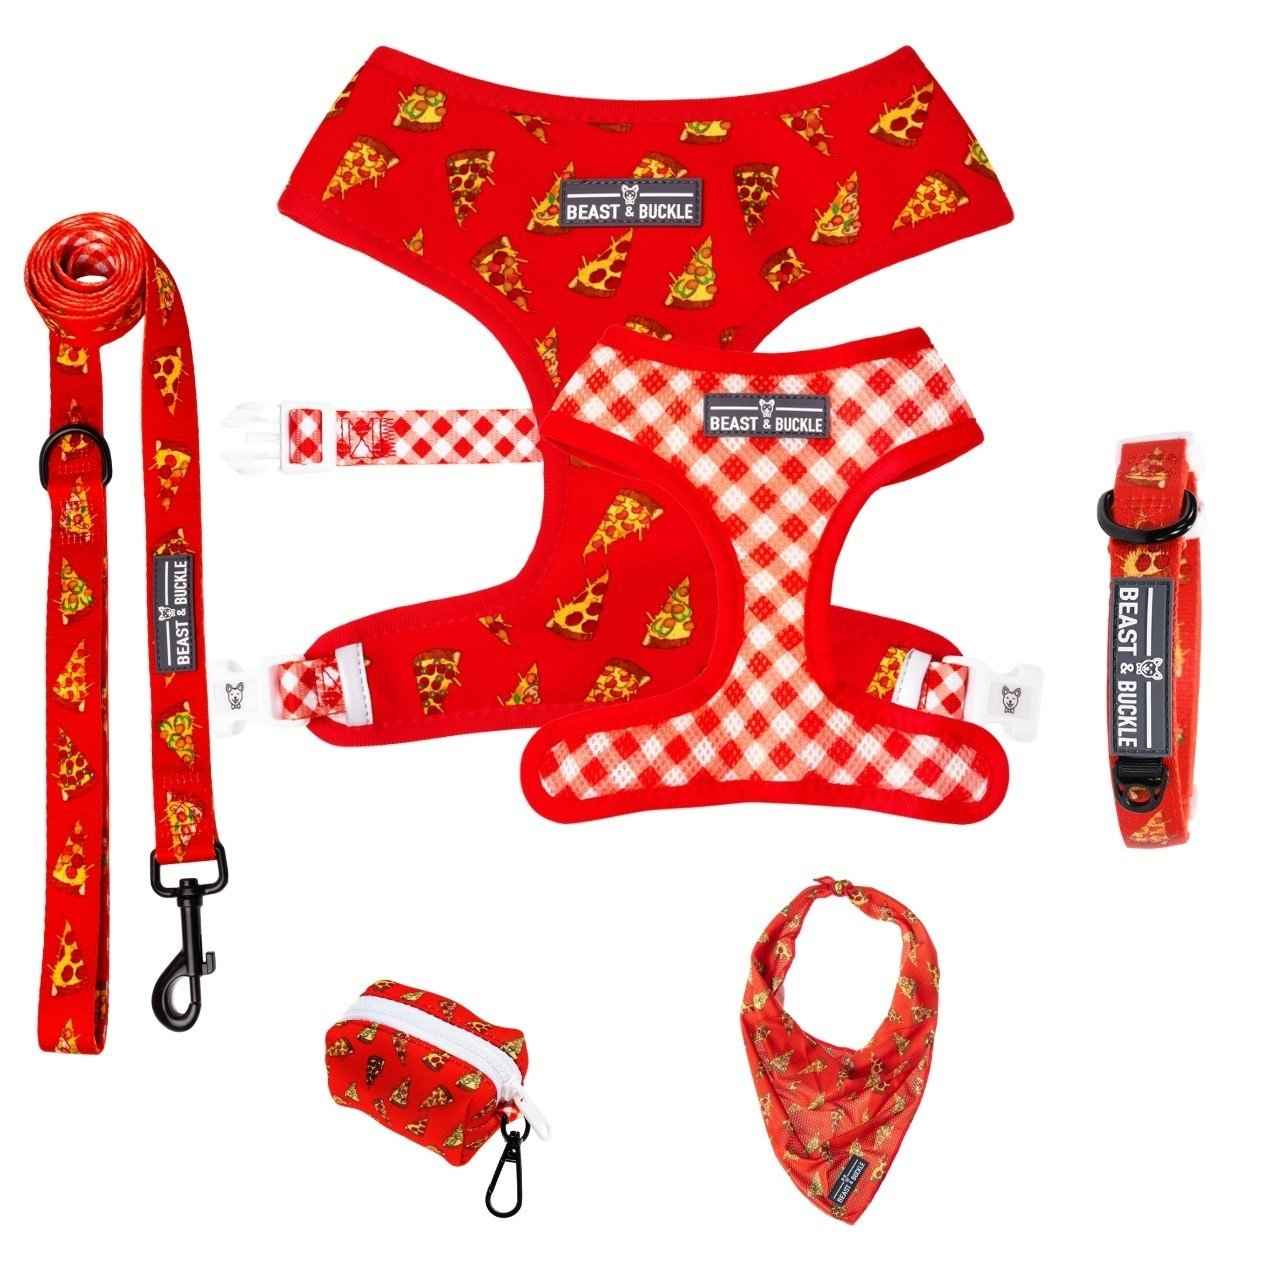 Pizza Collection Bundle - Beast & Buckle